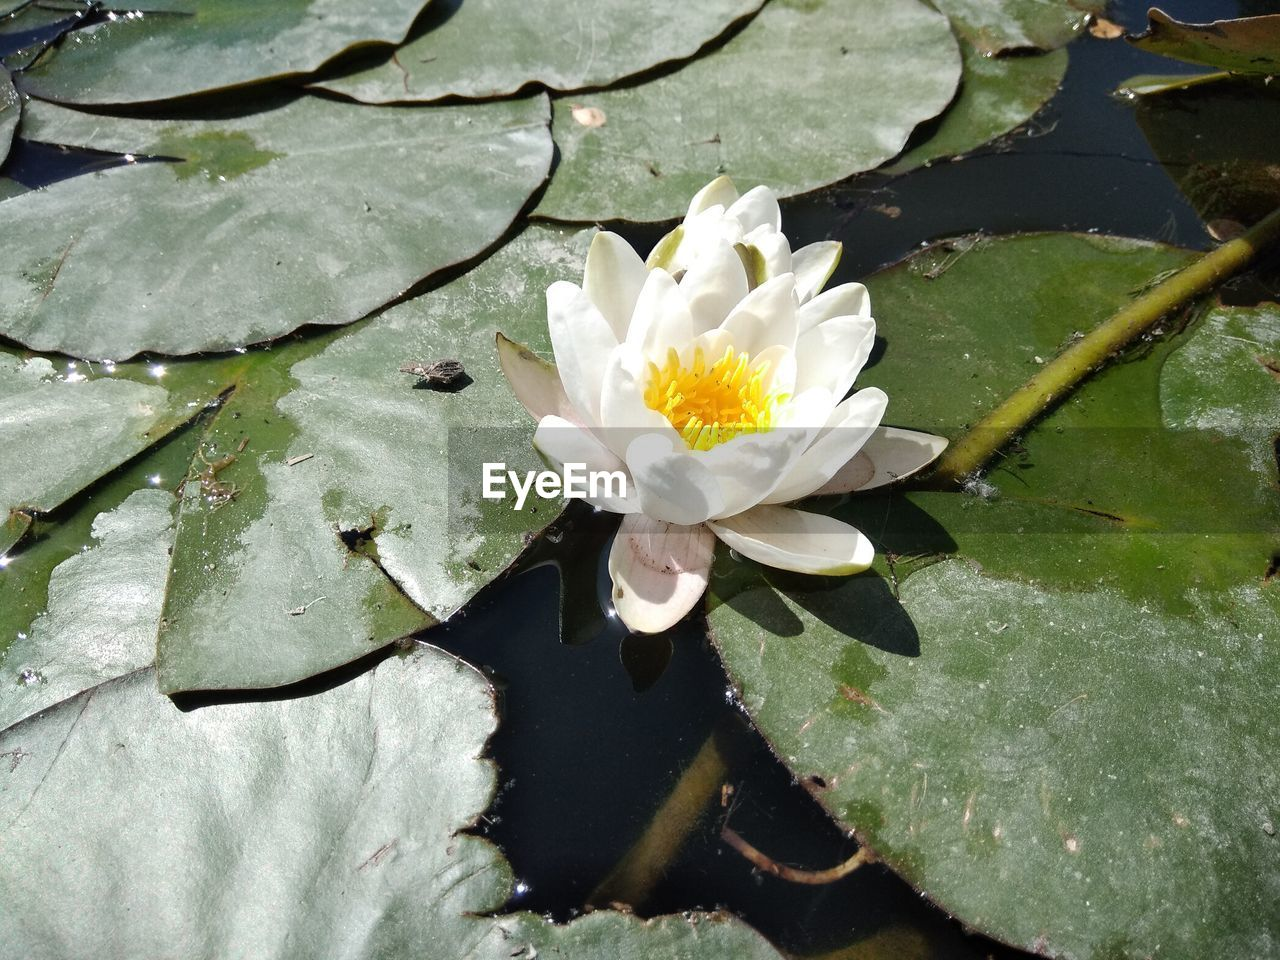 flower, flowering plant, plant, beauty in nature, leaf, freshness, vulnerability, fragility, water, plant part, growth, lake, petal, nature, white color, flower head, inflorescence, close-up, floating on water, no people, pollen, outdoors, leaves